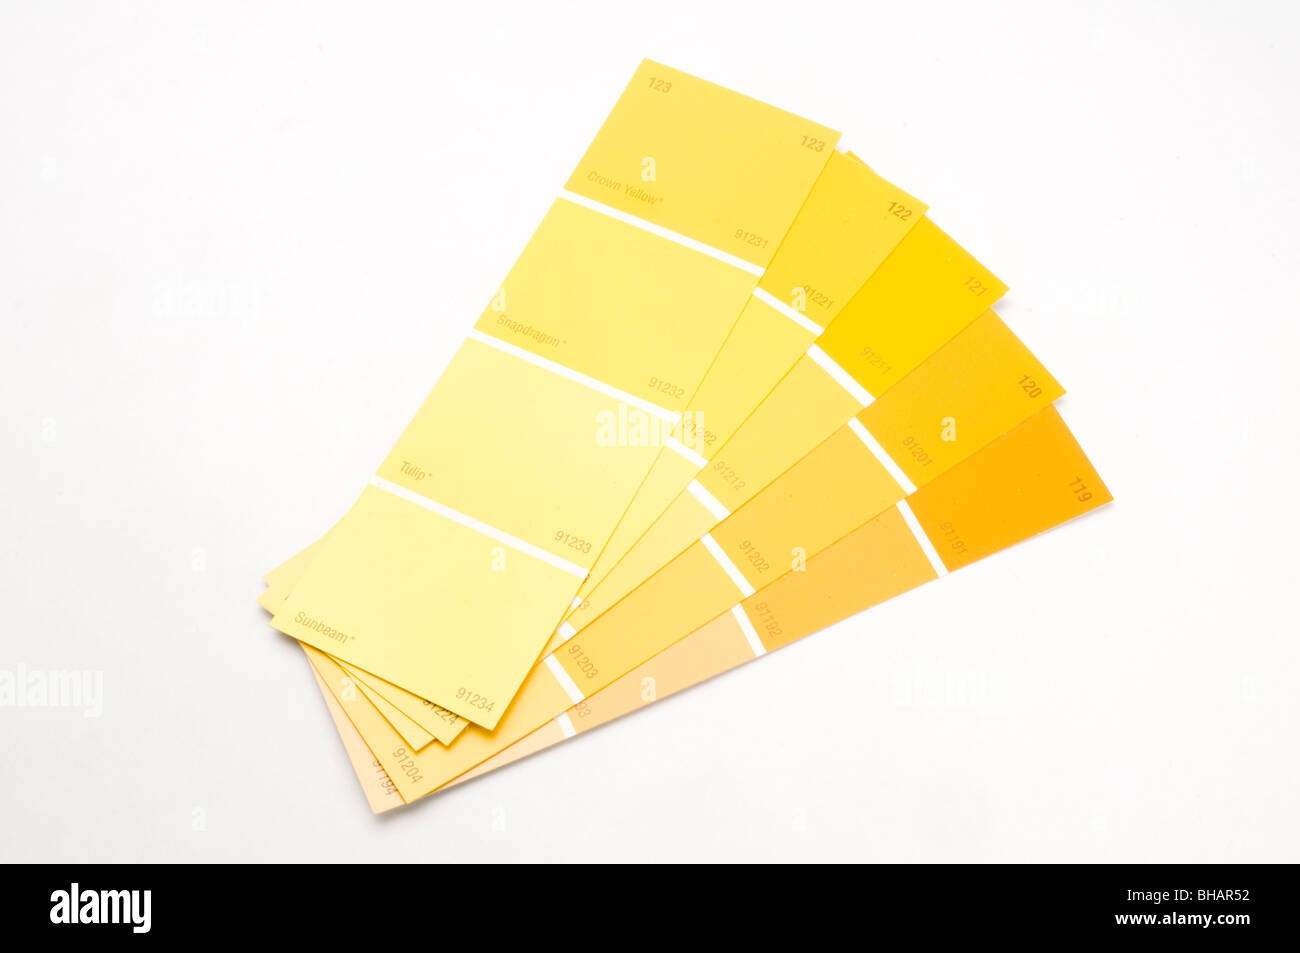 Paint Chips High Resolution Stock Photography and Images - Alamy